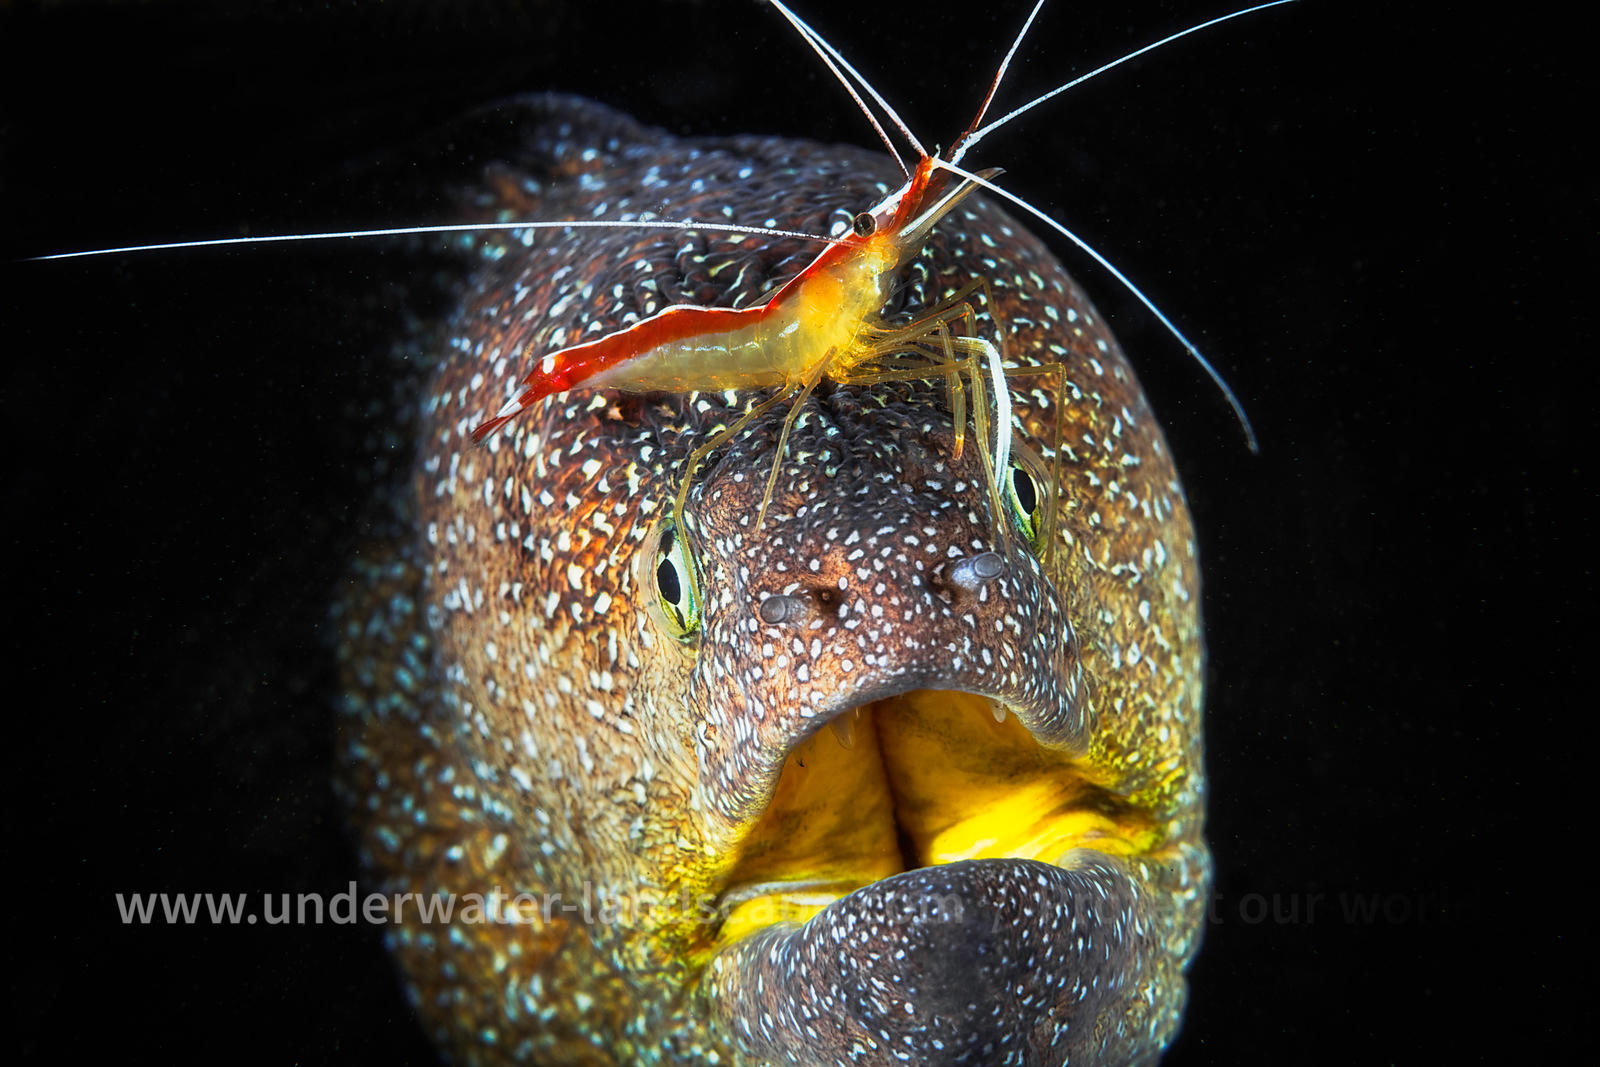 Starry moray and cleaner Shrimp!